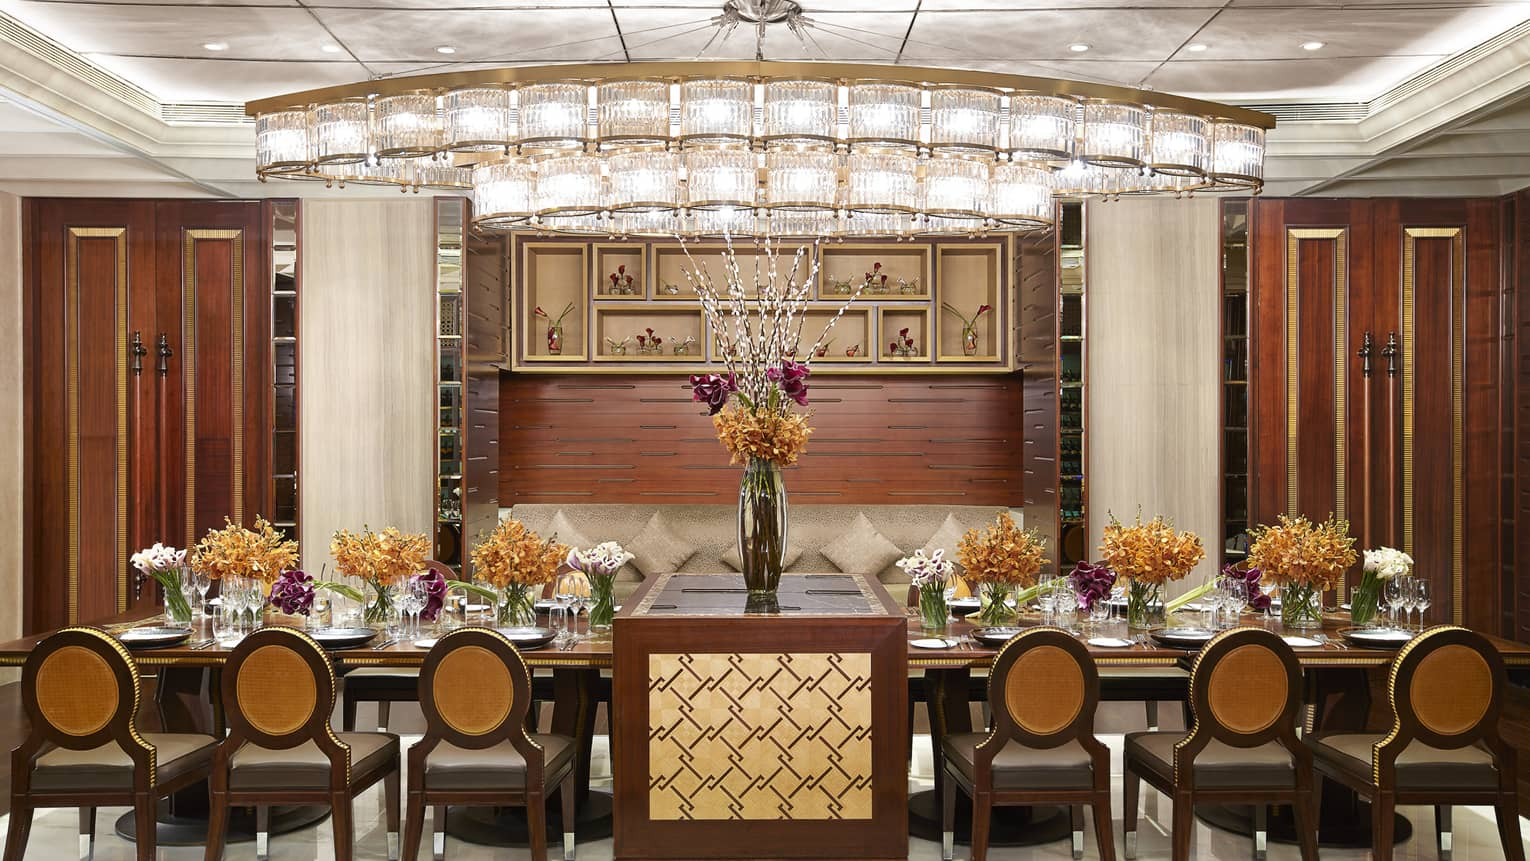 Long private dining table with flower in The Kitchen meeting room with wood walls, crystal lights